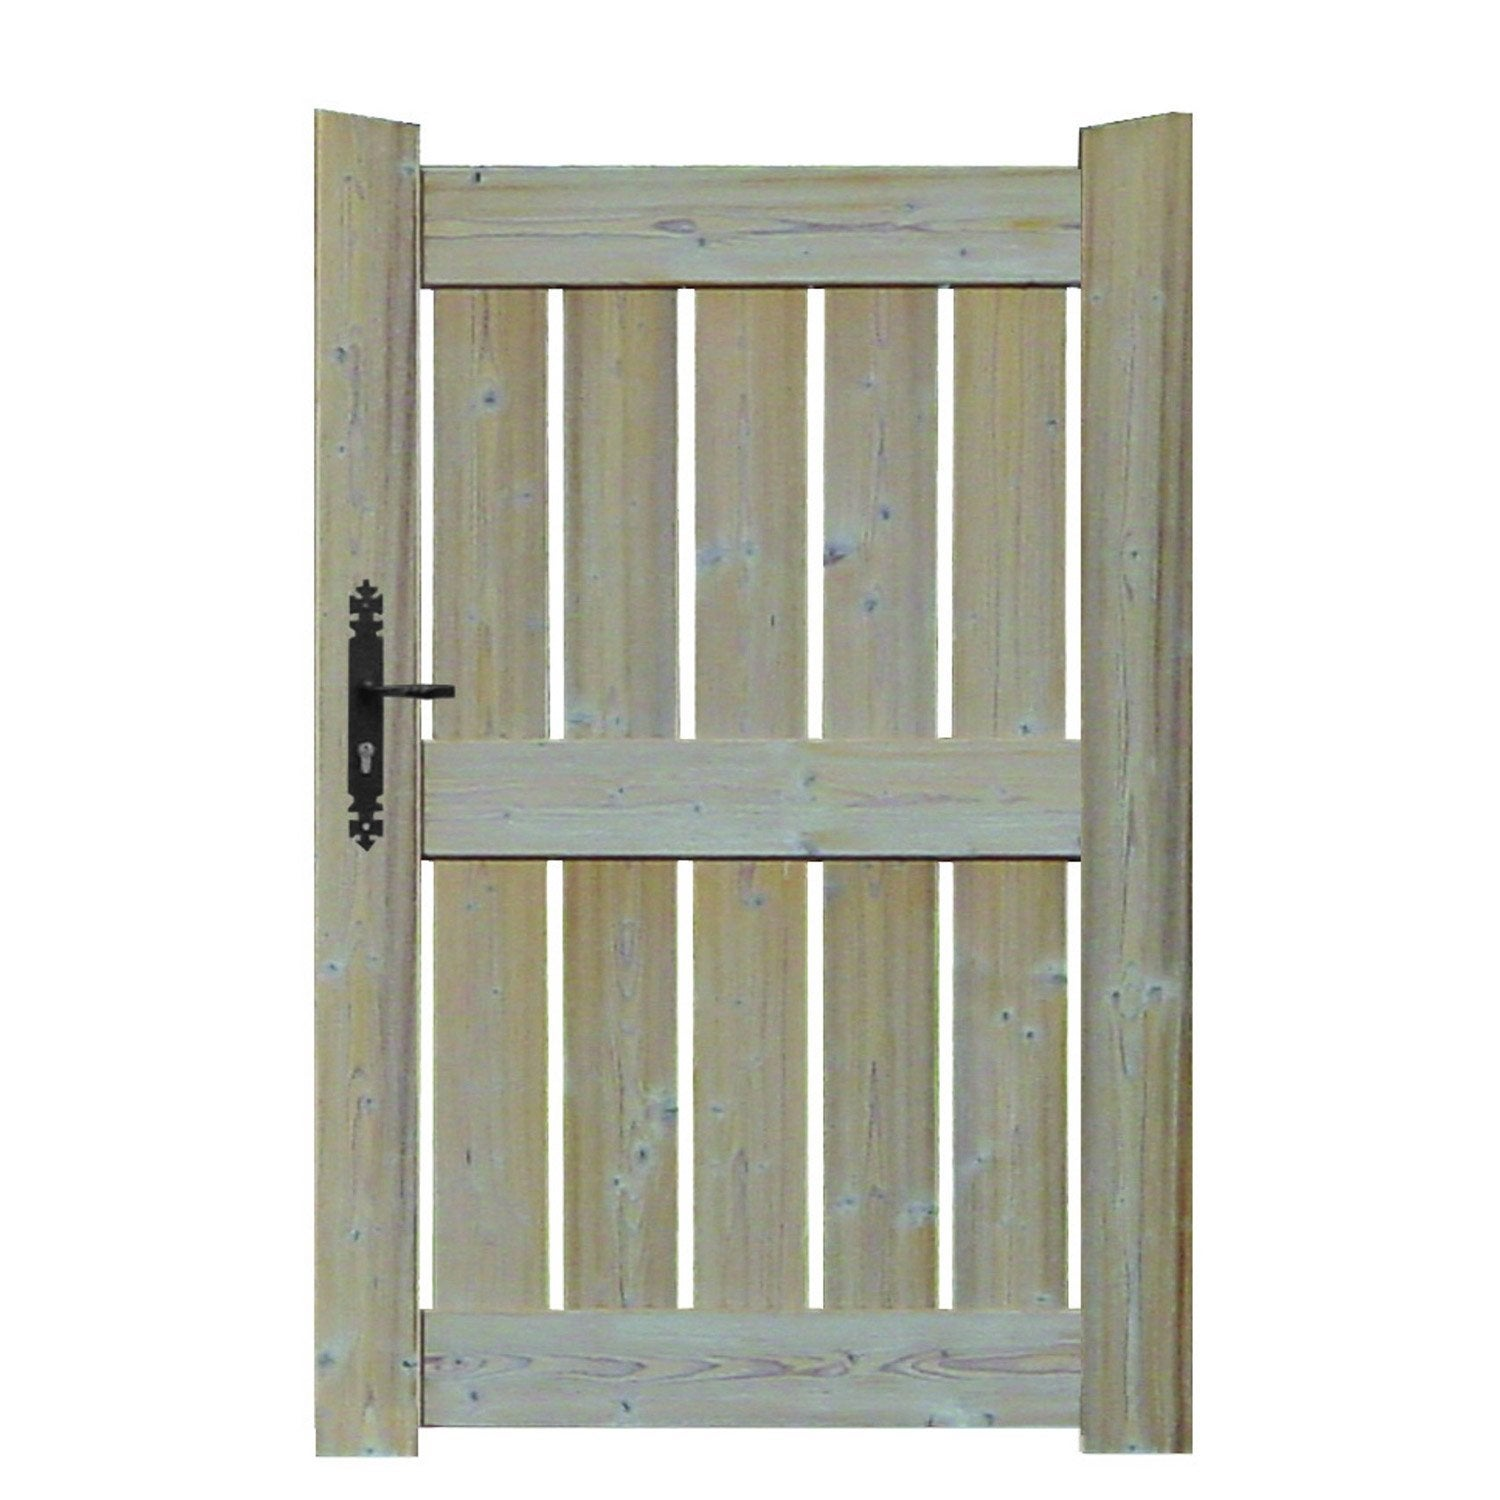 Portillon battant en bois le porge x cm for Portillon piscine bois